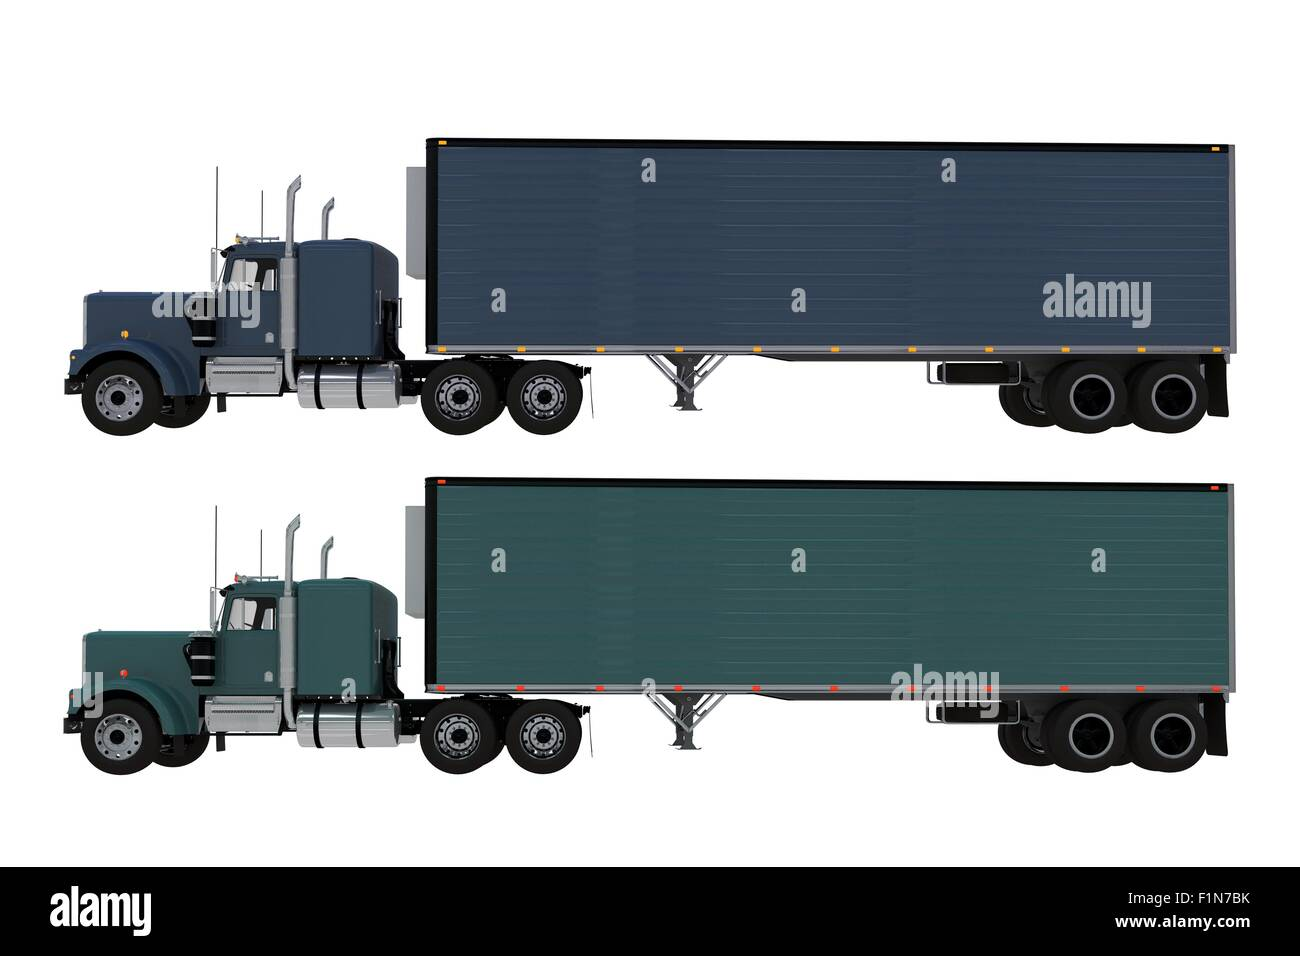 Two Trucks Side View Isolated on Solid White Background  Dark Blue